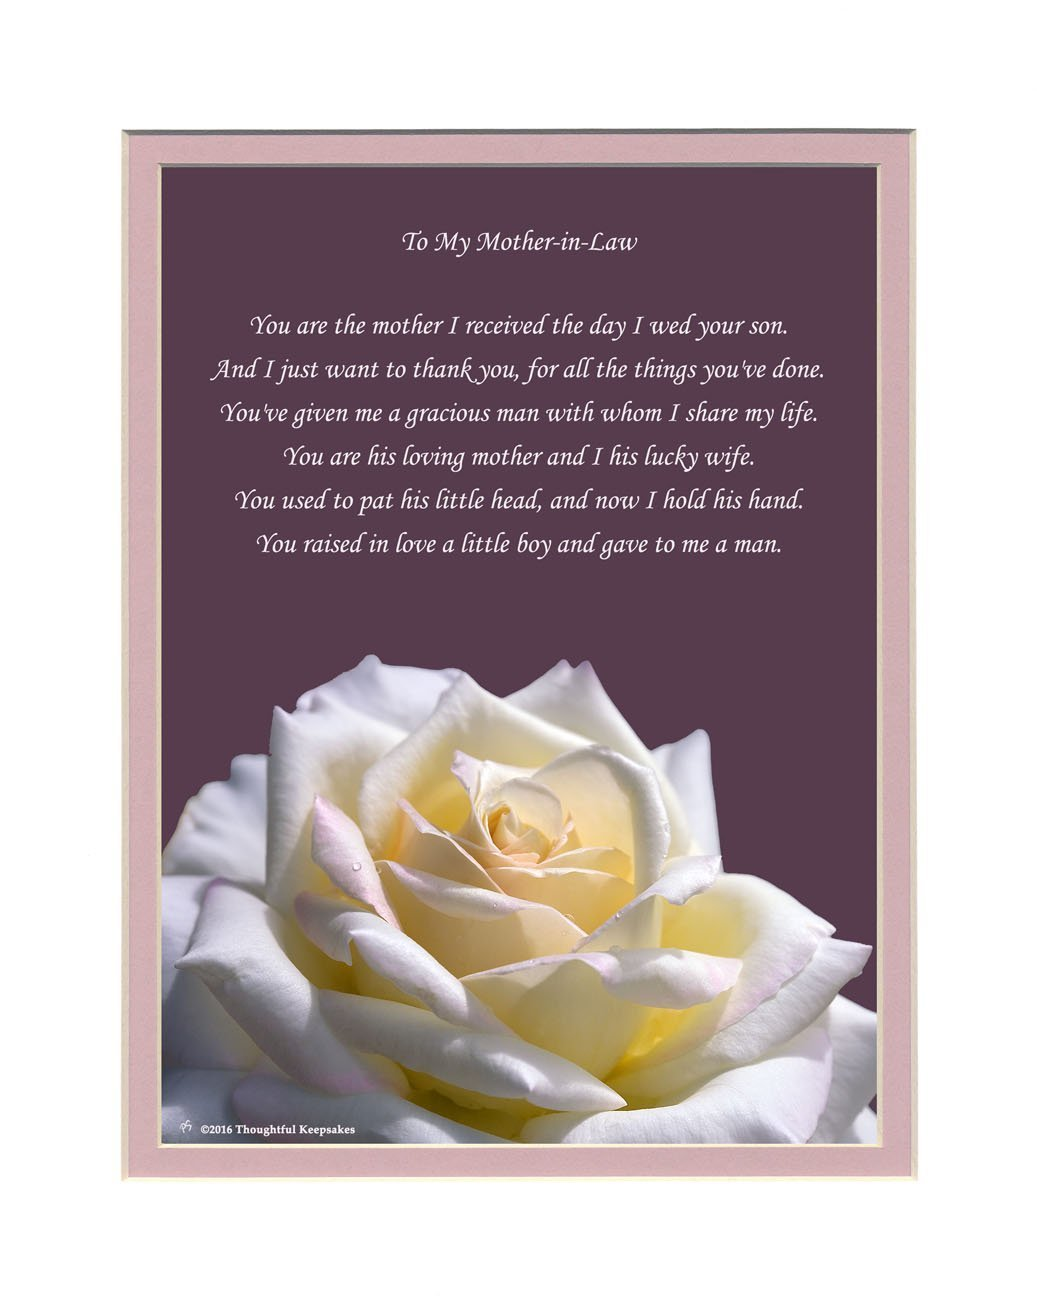 Mother-in-Law Gift with Thank You for My Husband Poem. Rose Photo, 8x10 Double Matted for Mother-in-law for Wedding, Christmas or Birthday Gifts